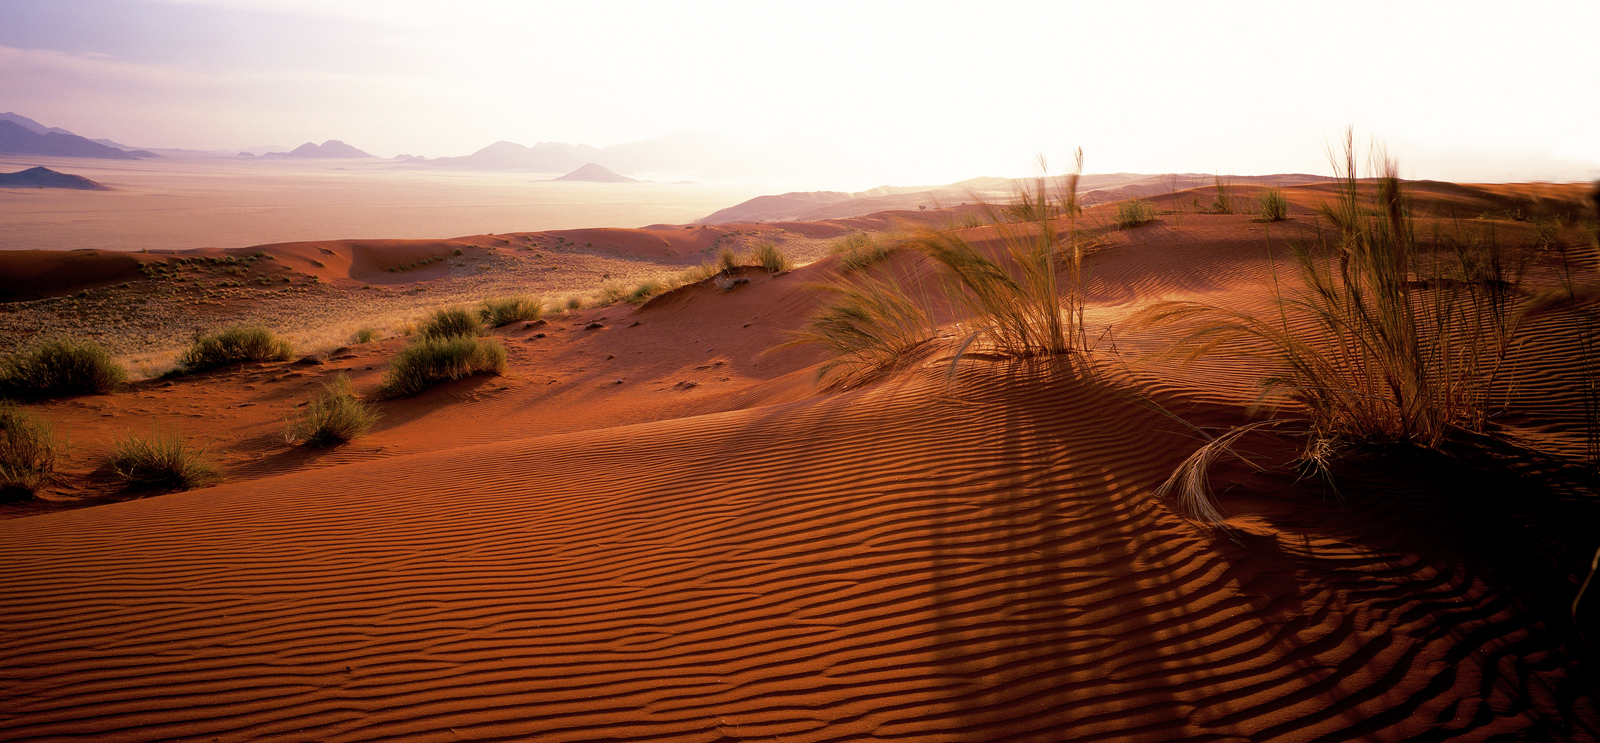 Dunes at Naukluft Park, Namibia by Horst Klemm